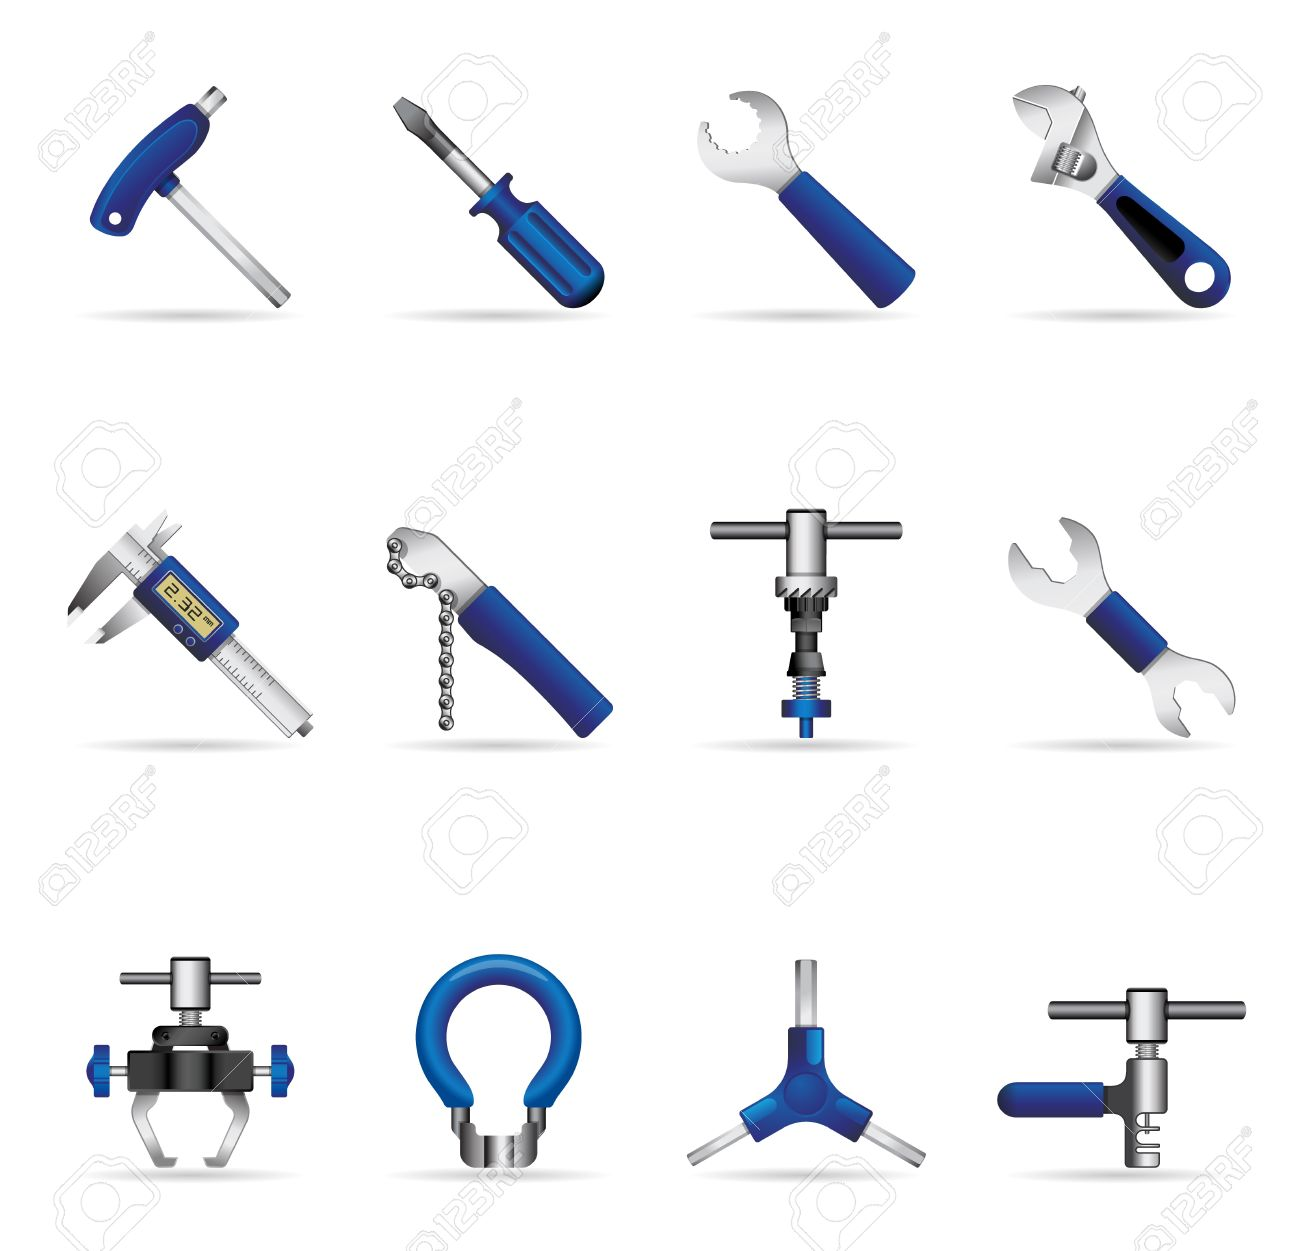 Bicycle tools icon set Stock Vector - 13650423